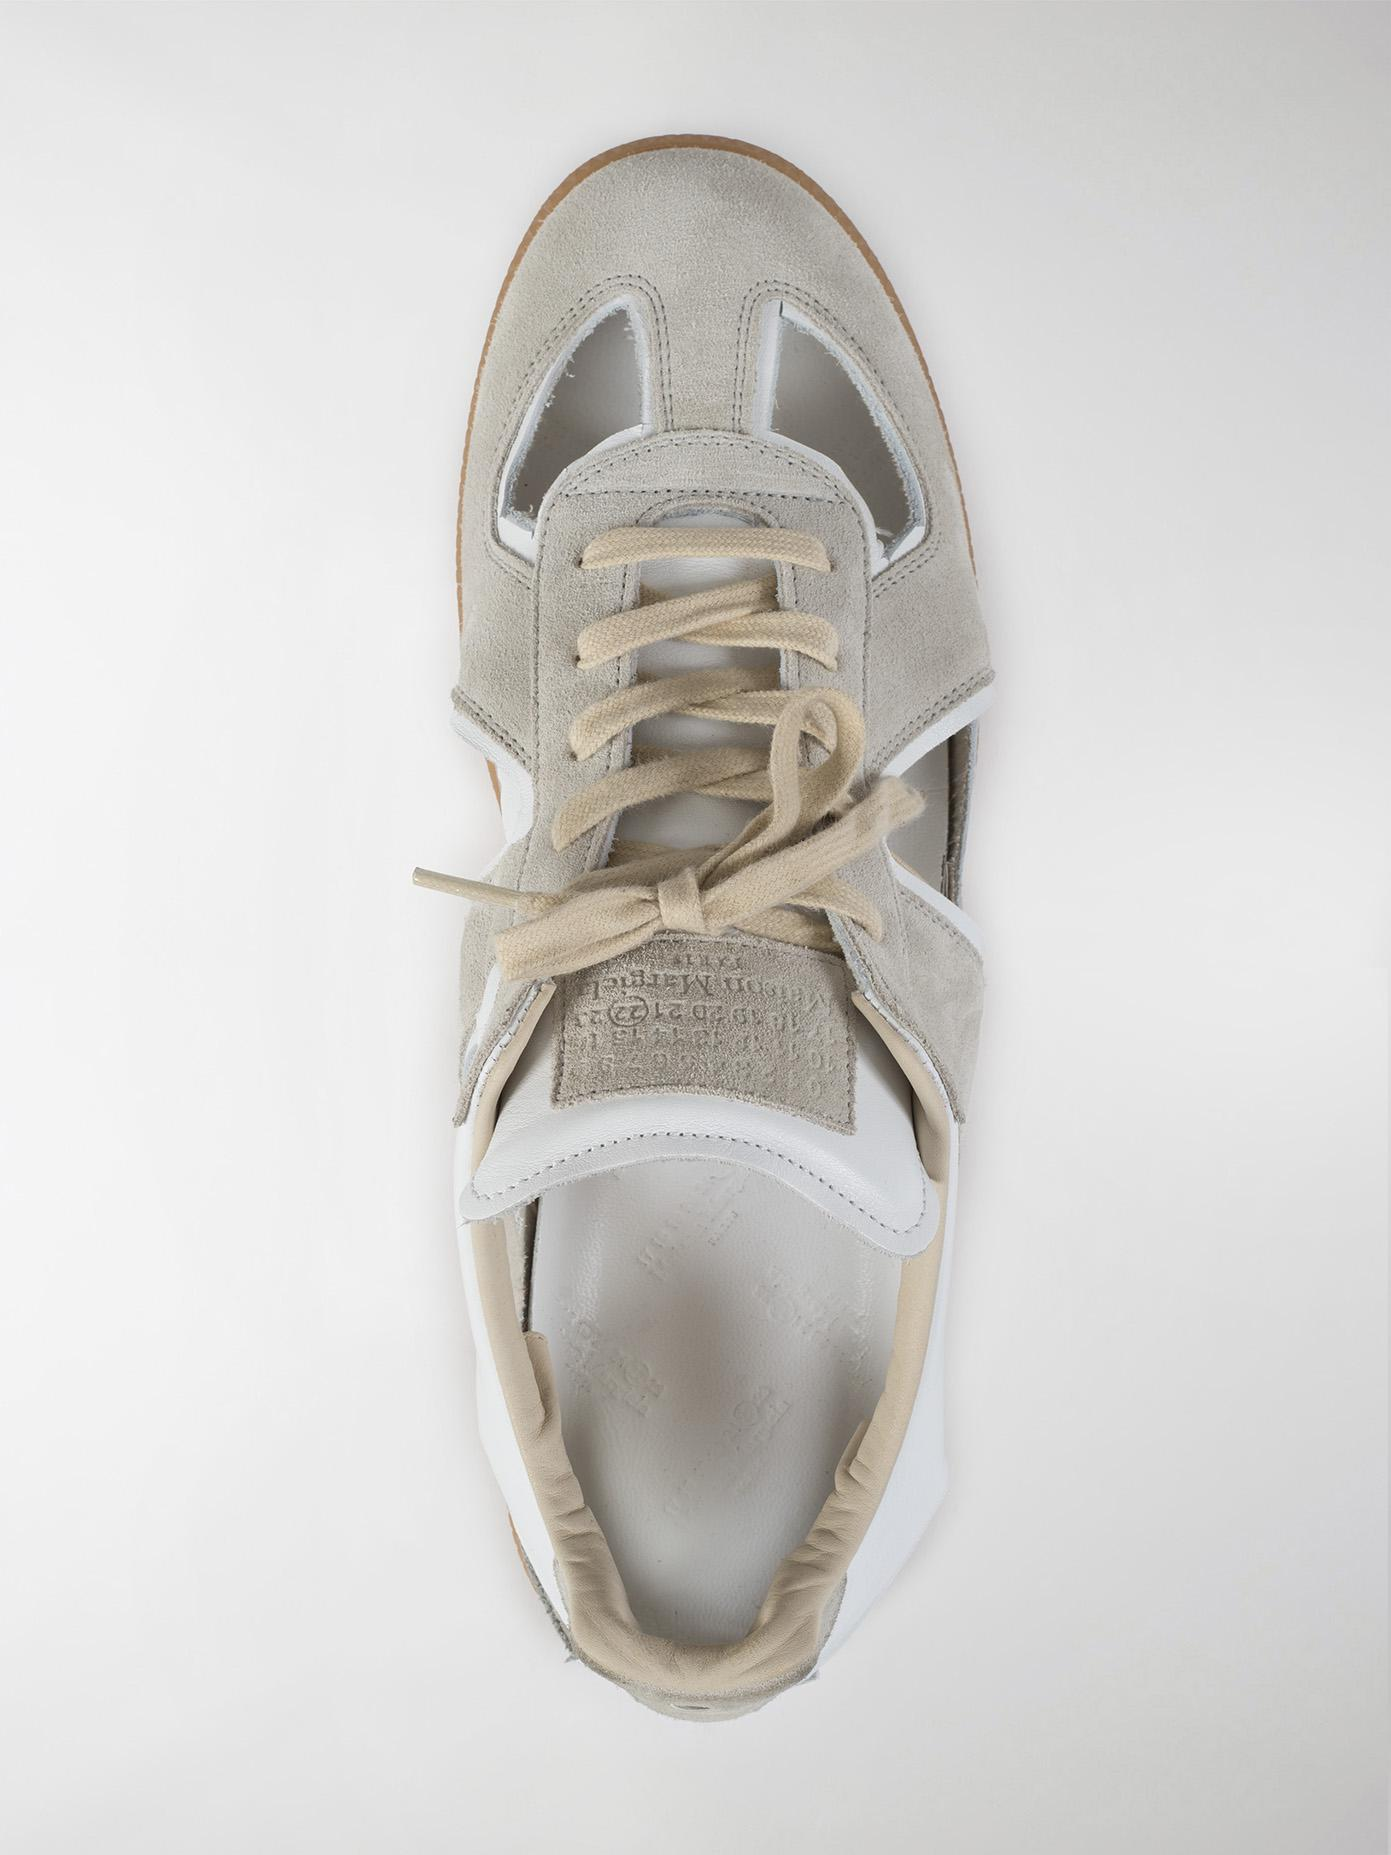 Maison Margiela Replica Cut Out Leather And Suede Sneakers in White